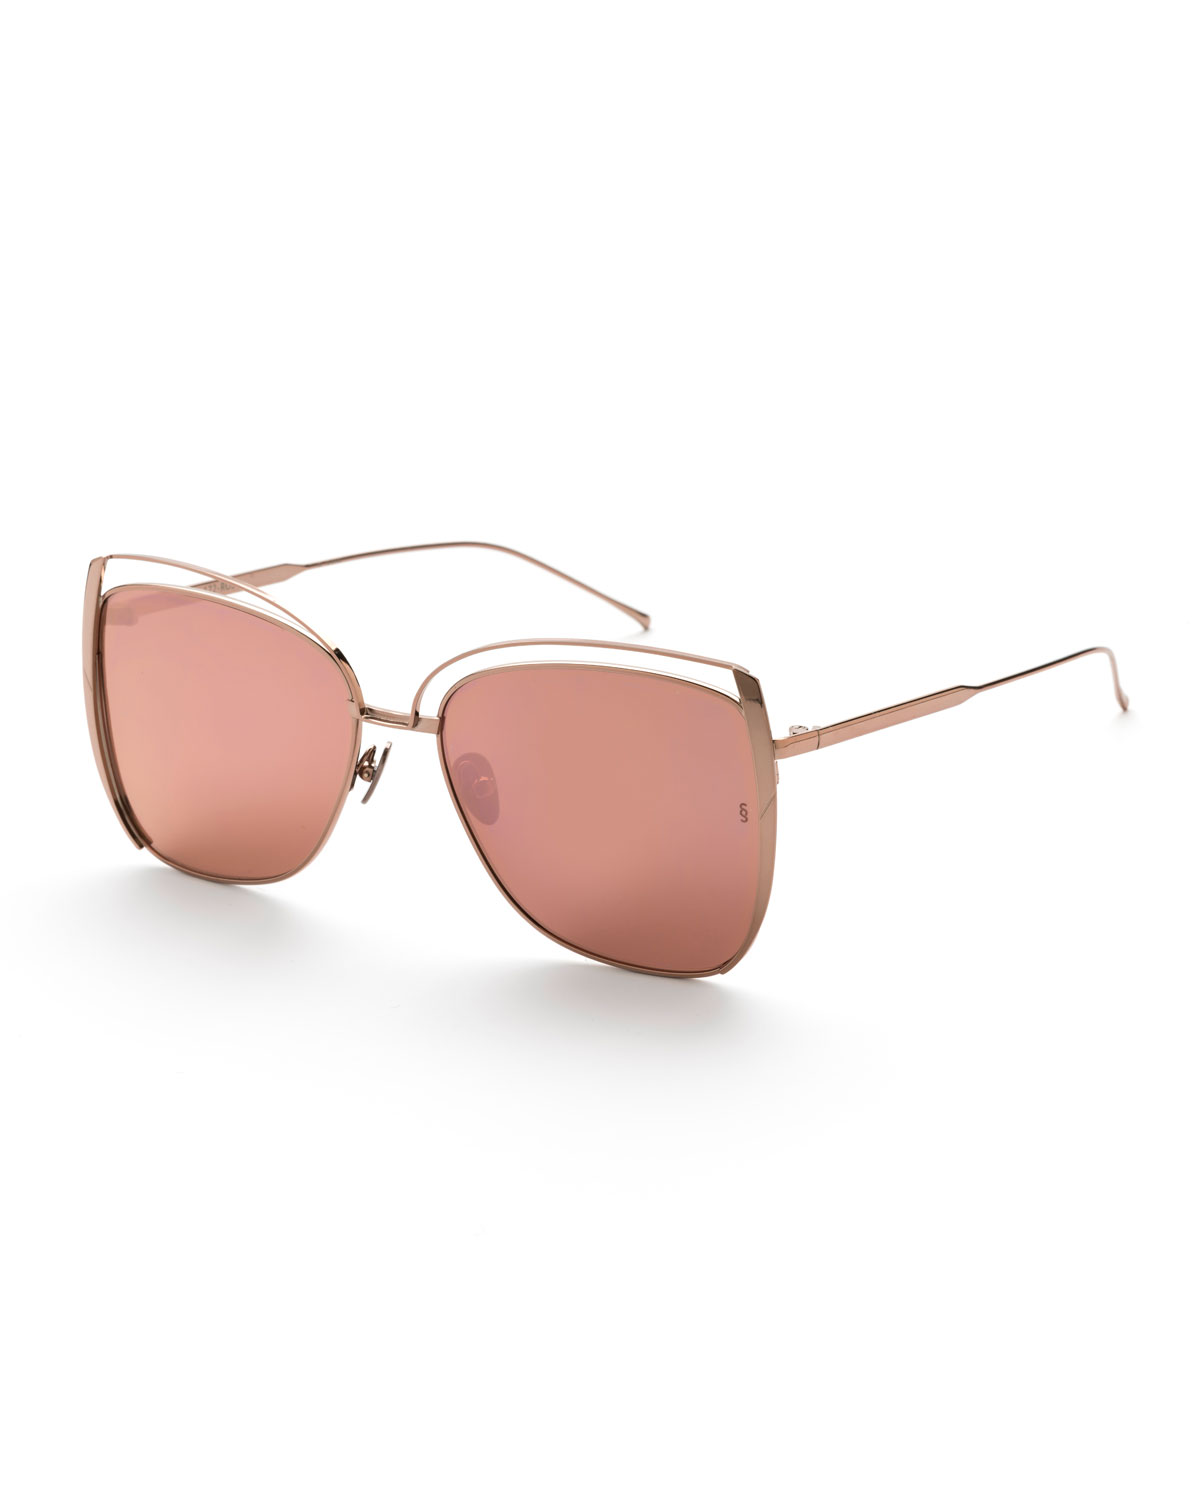 SUNDAY SOMEWHERE Poppy Cutout Titanium Square Sunglasses in Rose Gold